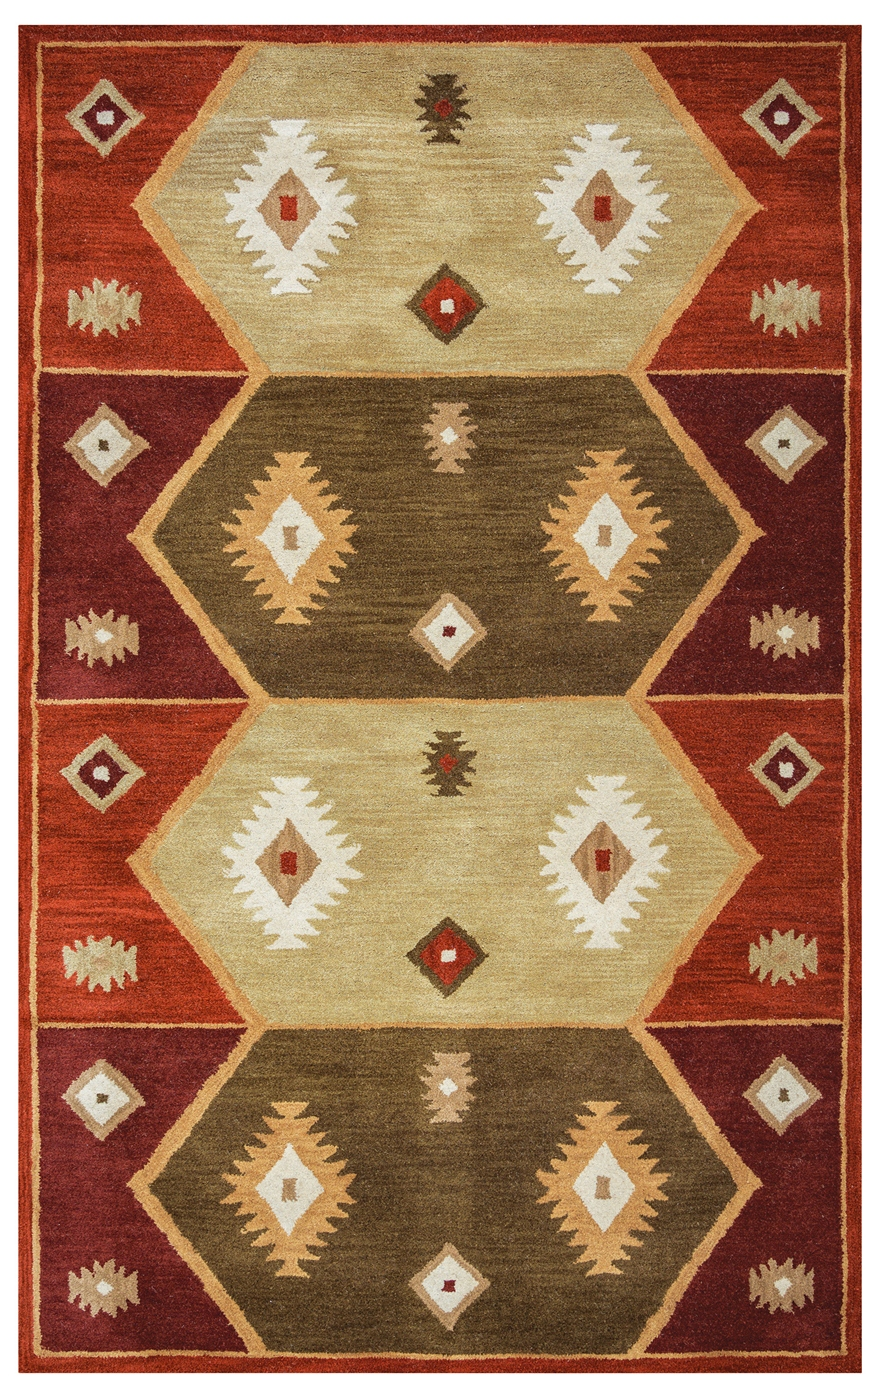 Southwest Tribal Totem Pattern Wool Area Rug In Green